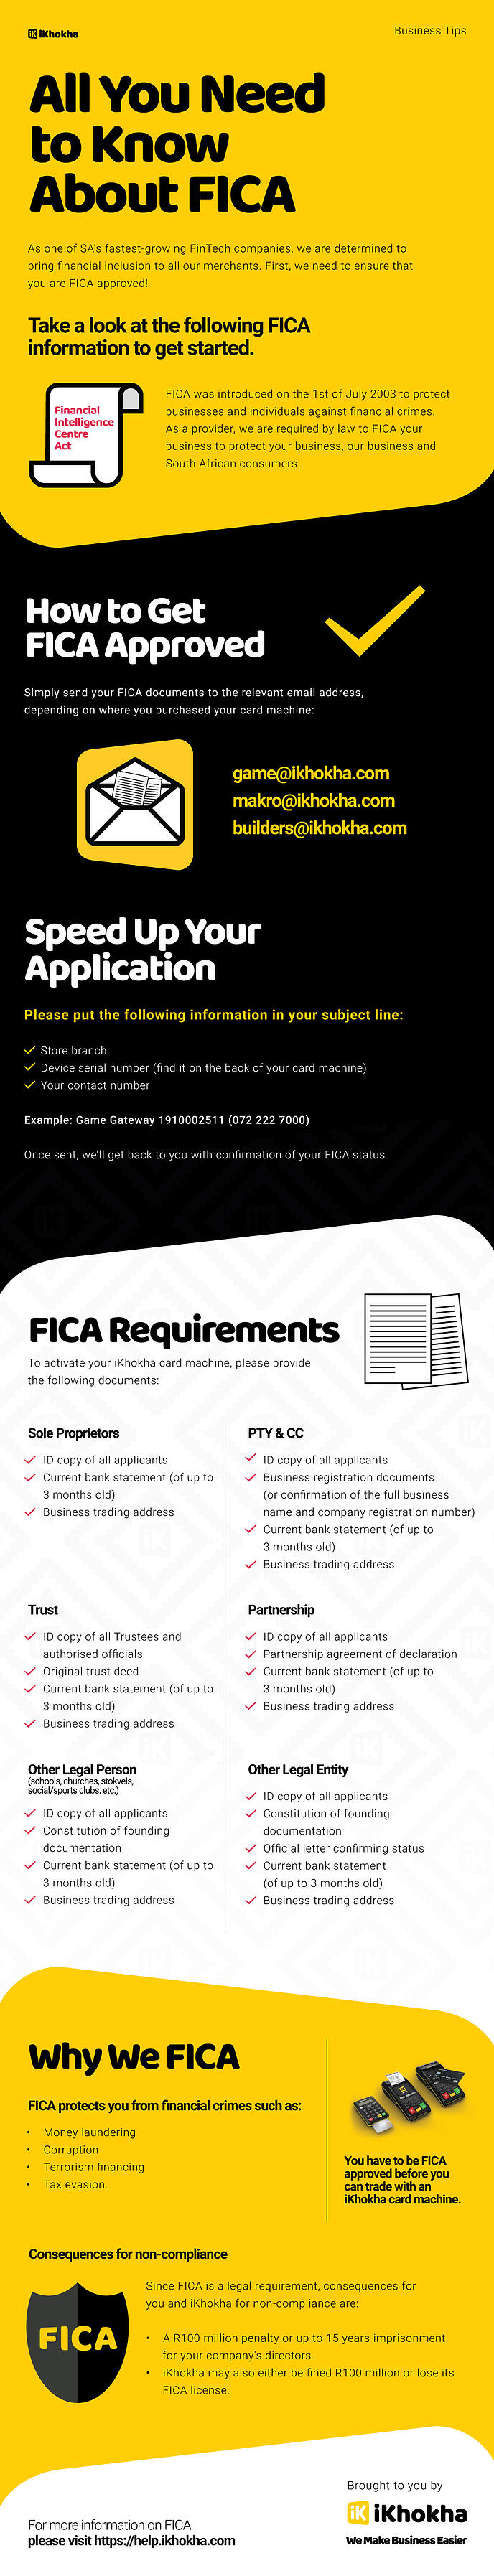 FICA-Infographic_retail_all-devices-1